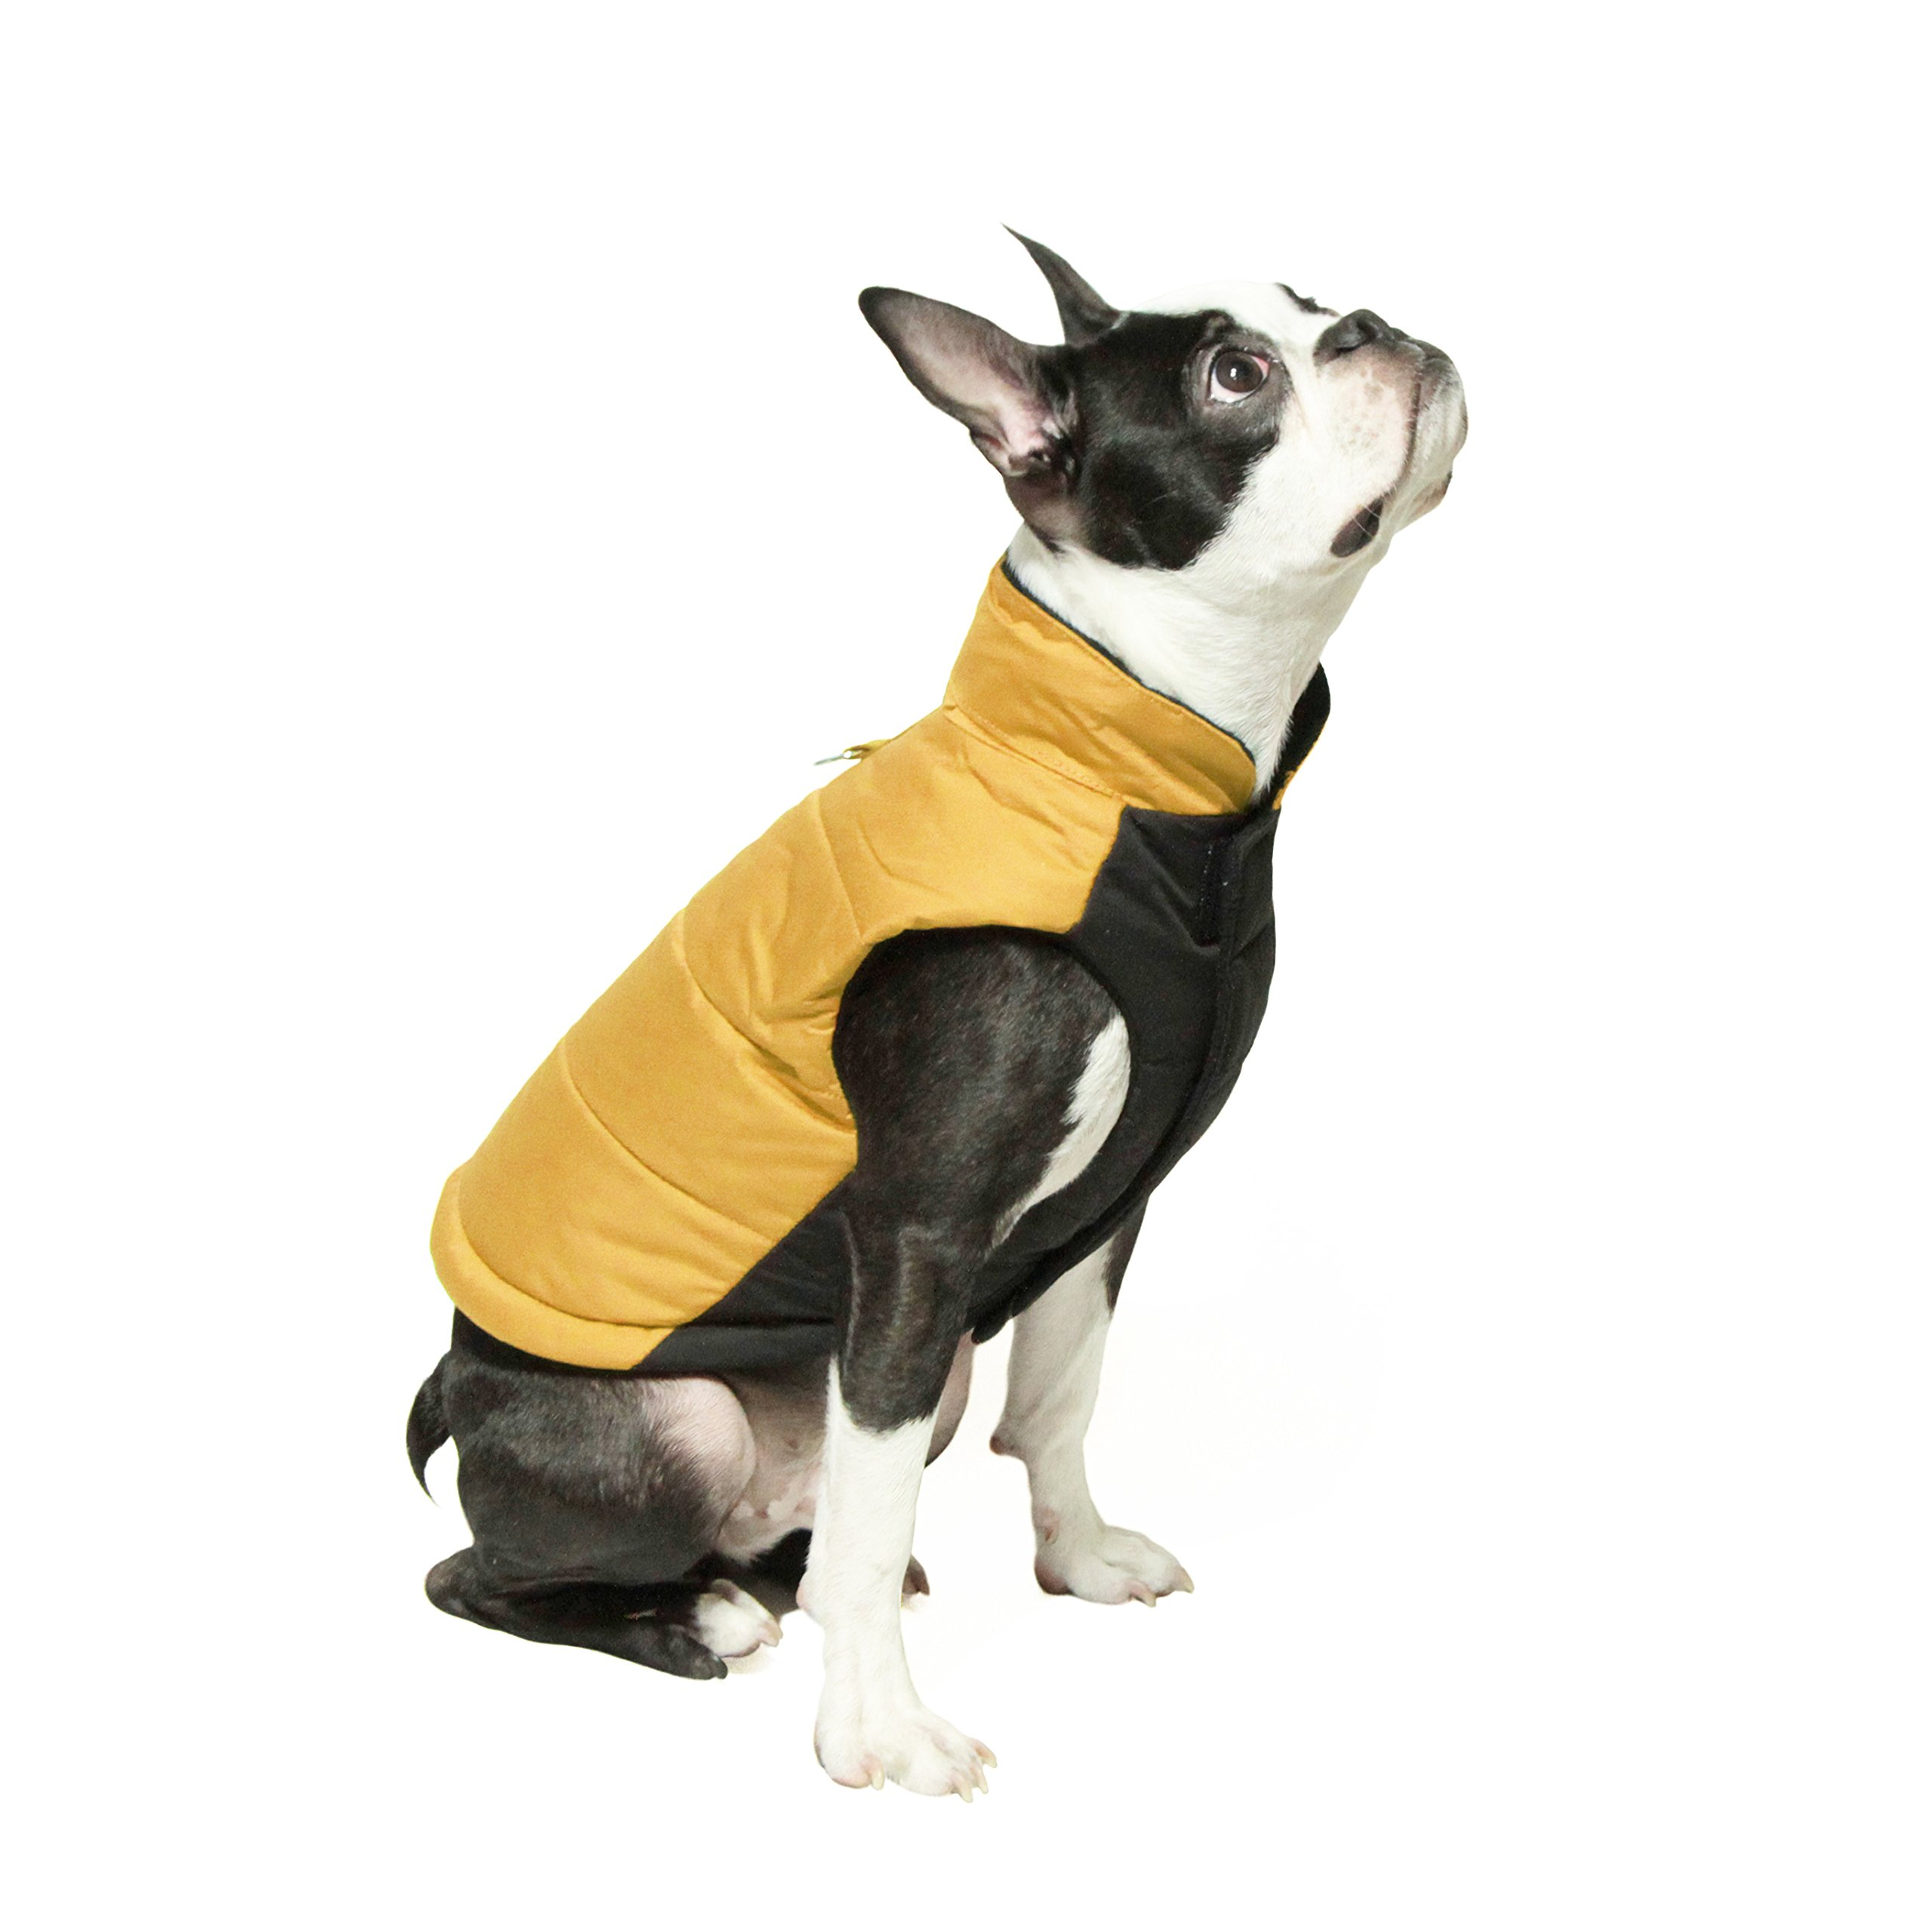 Gooby - Wind Parka, Fleece Lined Small Dog Jacket Coat Sweater with Water Resistant Shell and Leash Ring, Yellow, X-Small by Gooby